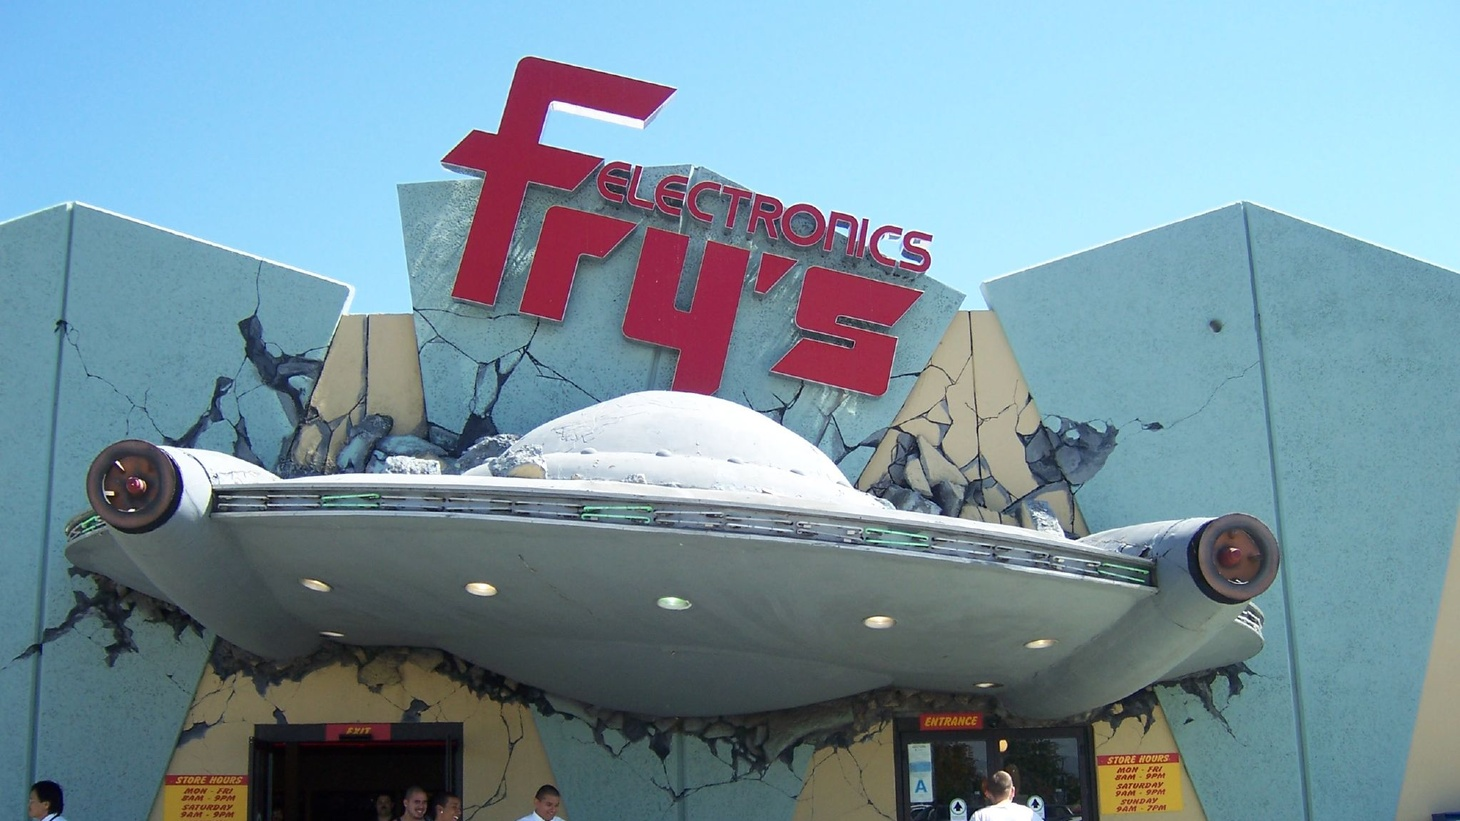 Fry's Electronics in Burbank featured a space/sci-fi theme.